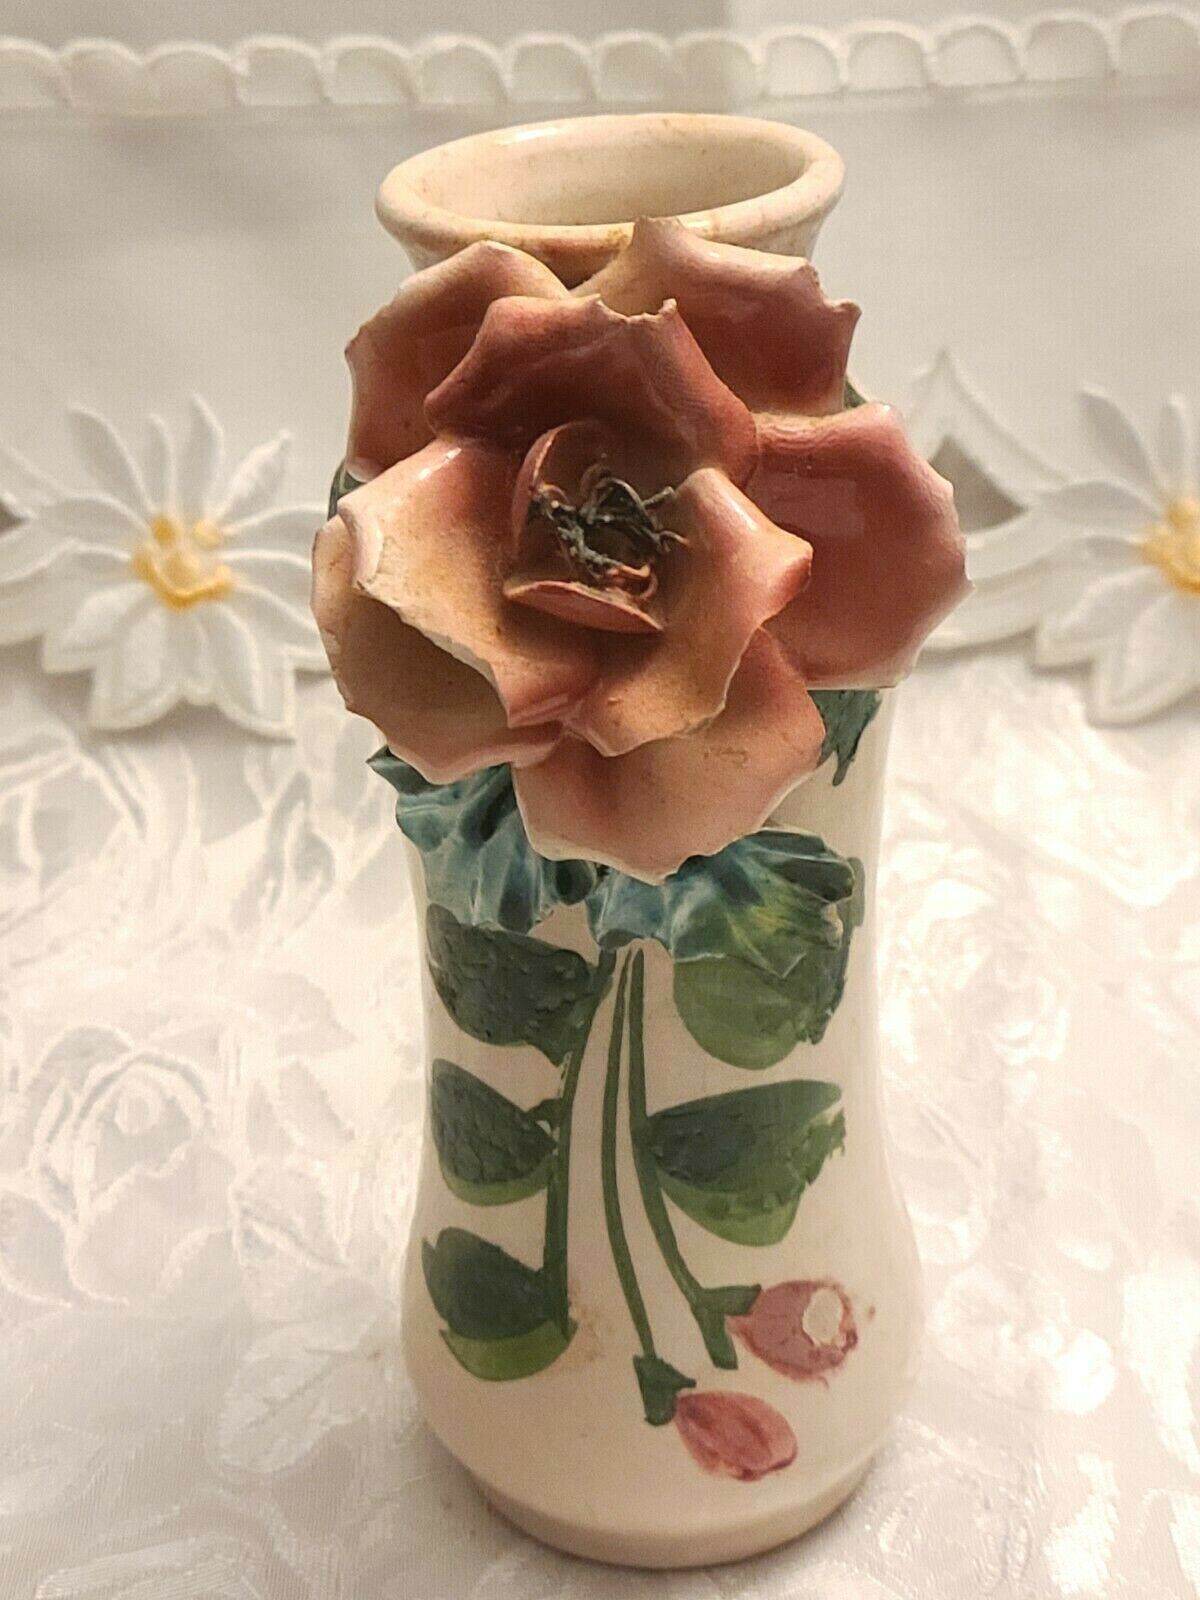 Antique Hand Made & Painted Sculpted Rose on a Ceramic Vase, Made In Italy